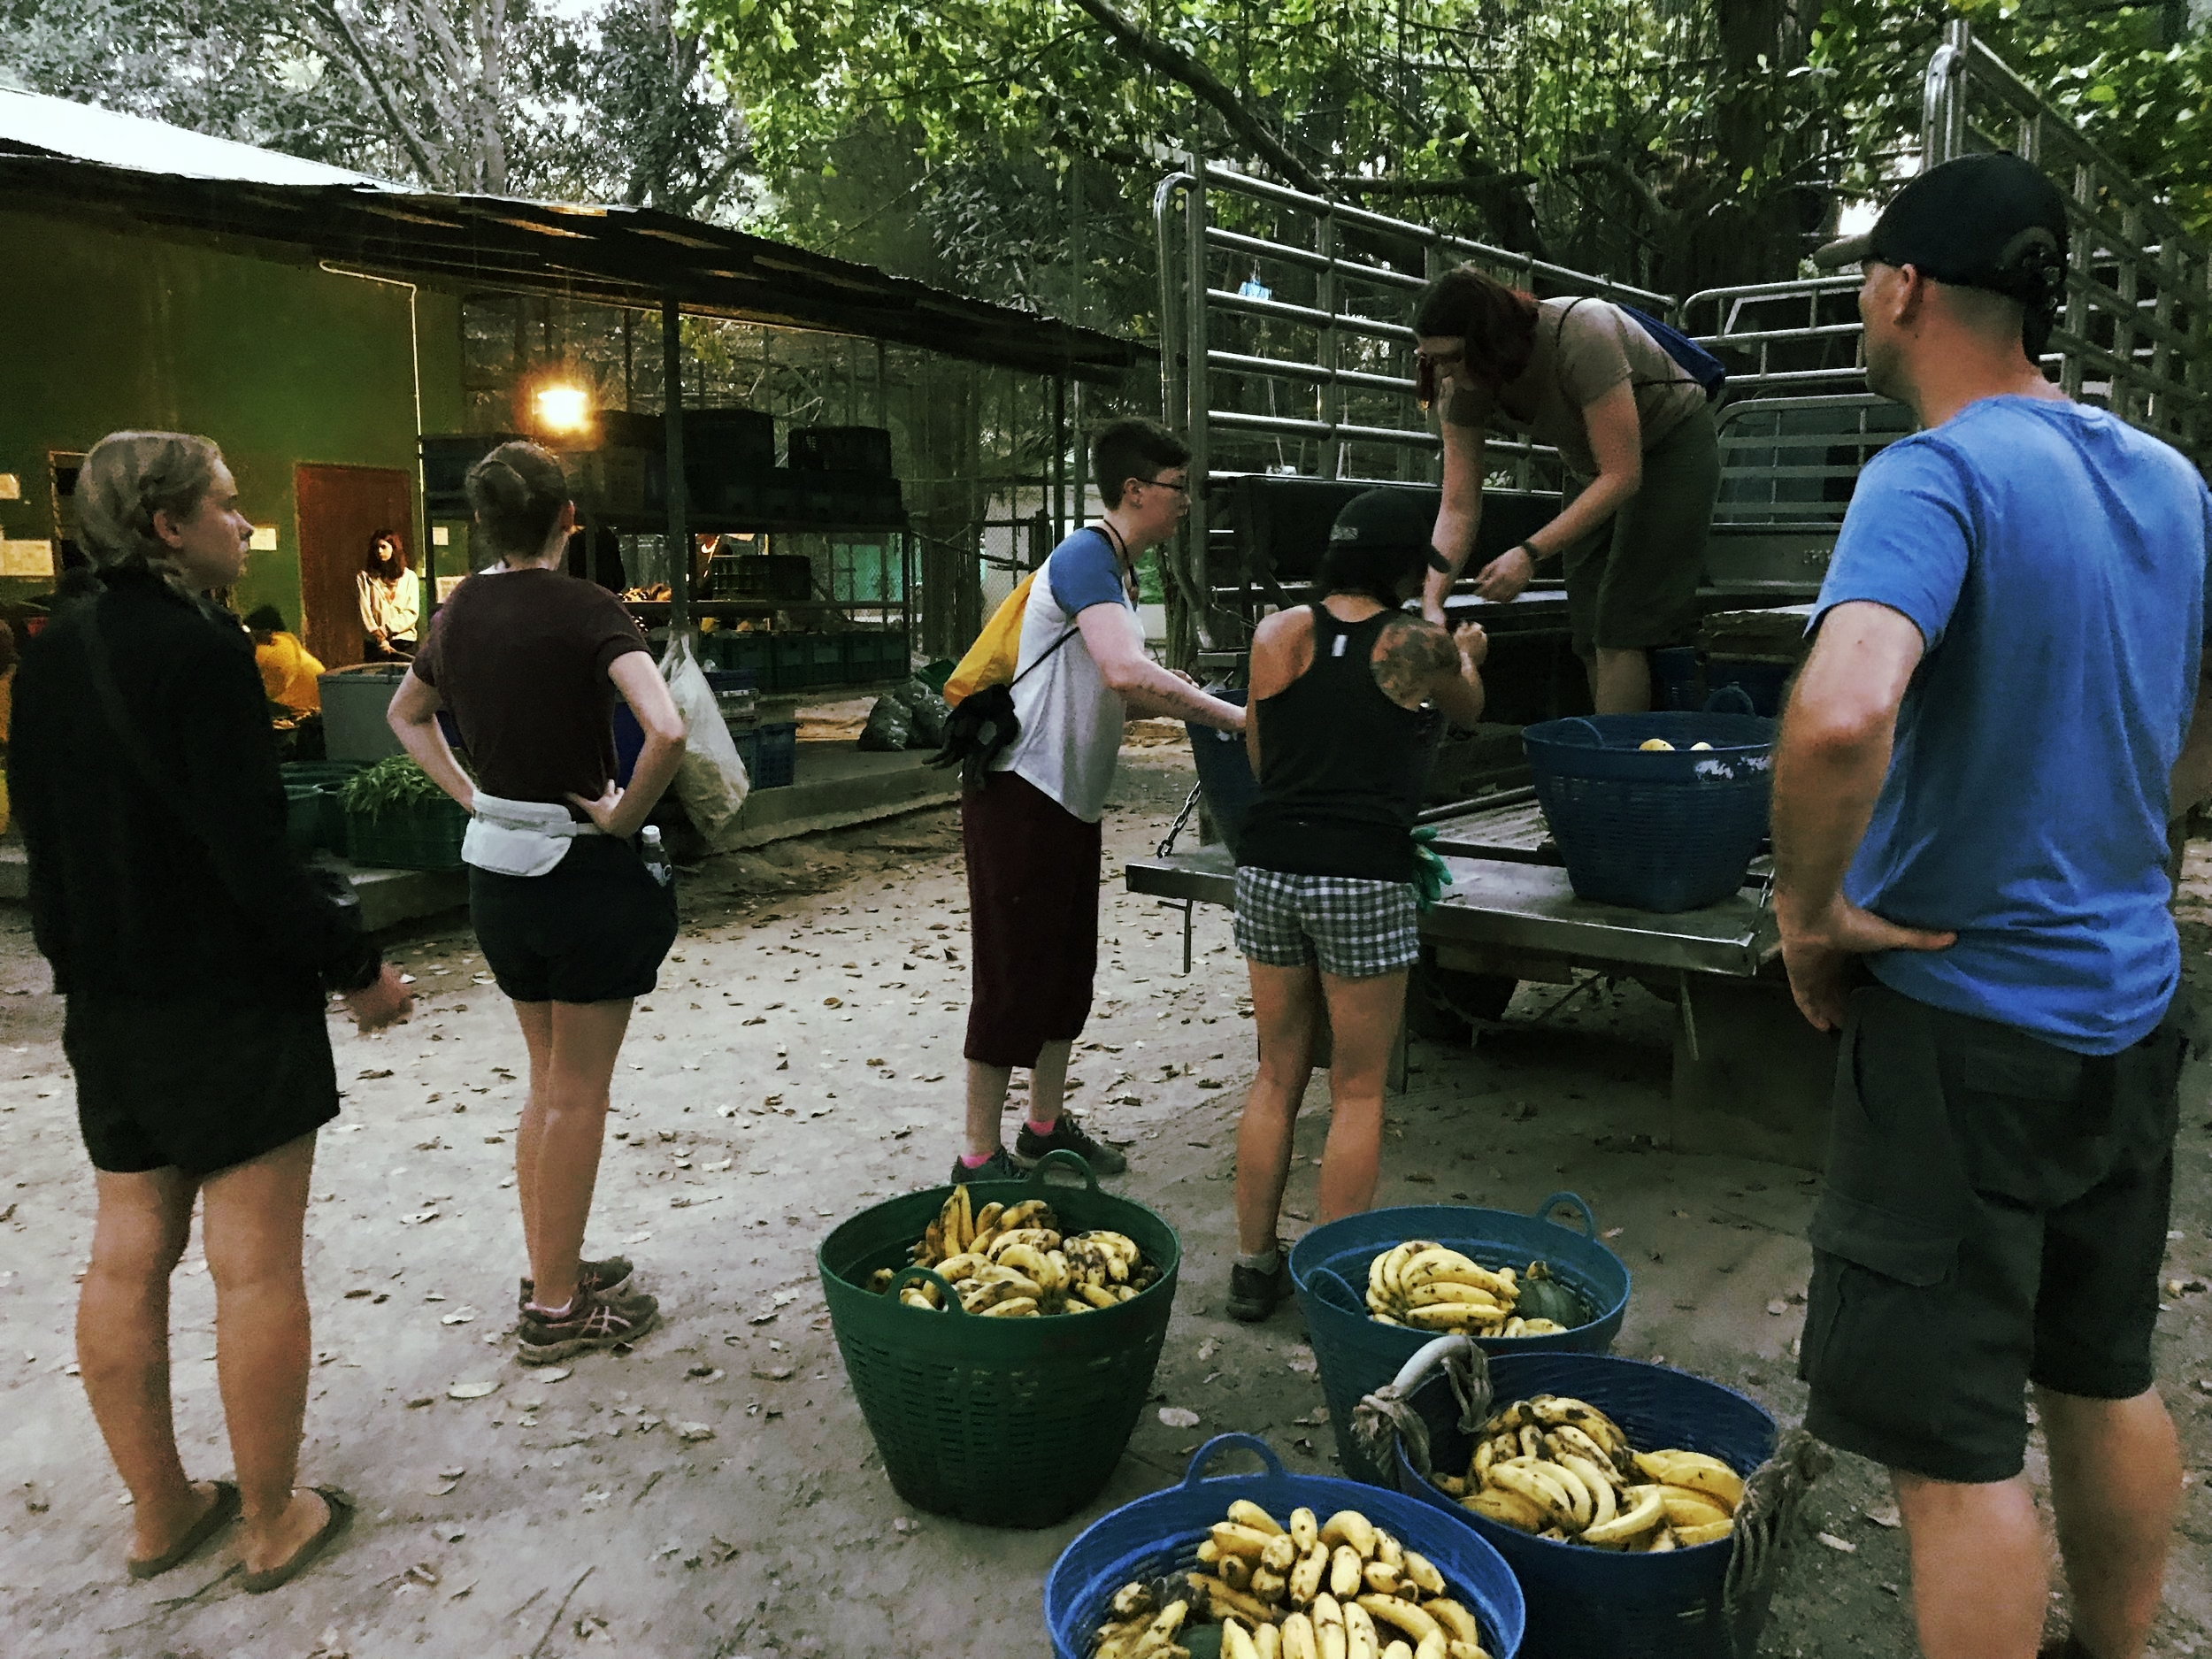 Morning routine: Loading the fruit baskets for the elephants